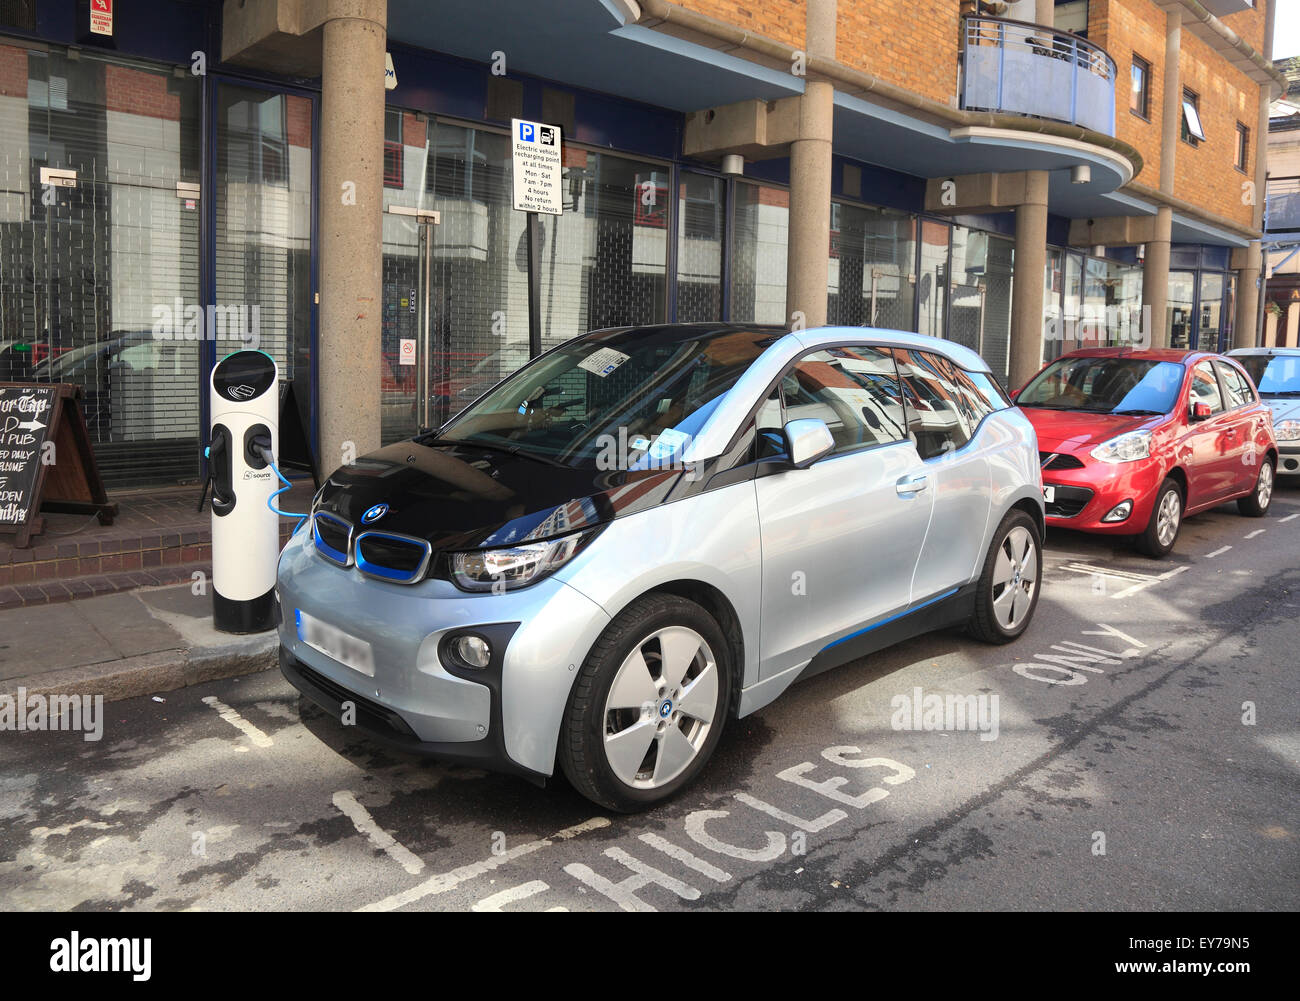 BMW Electric car recharging in the city of London - Stock Image